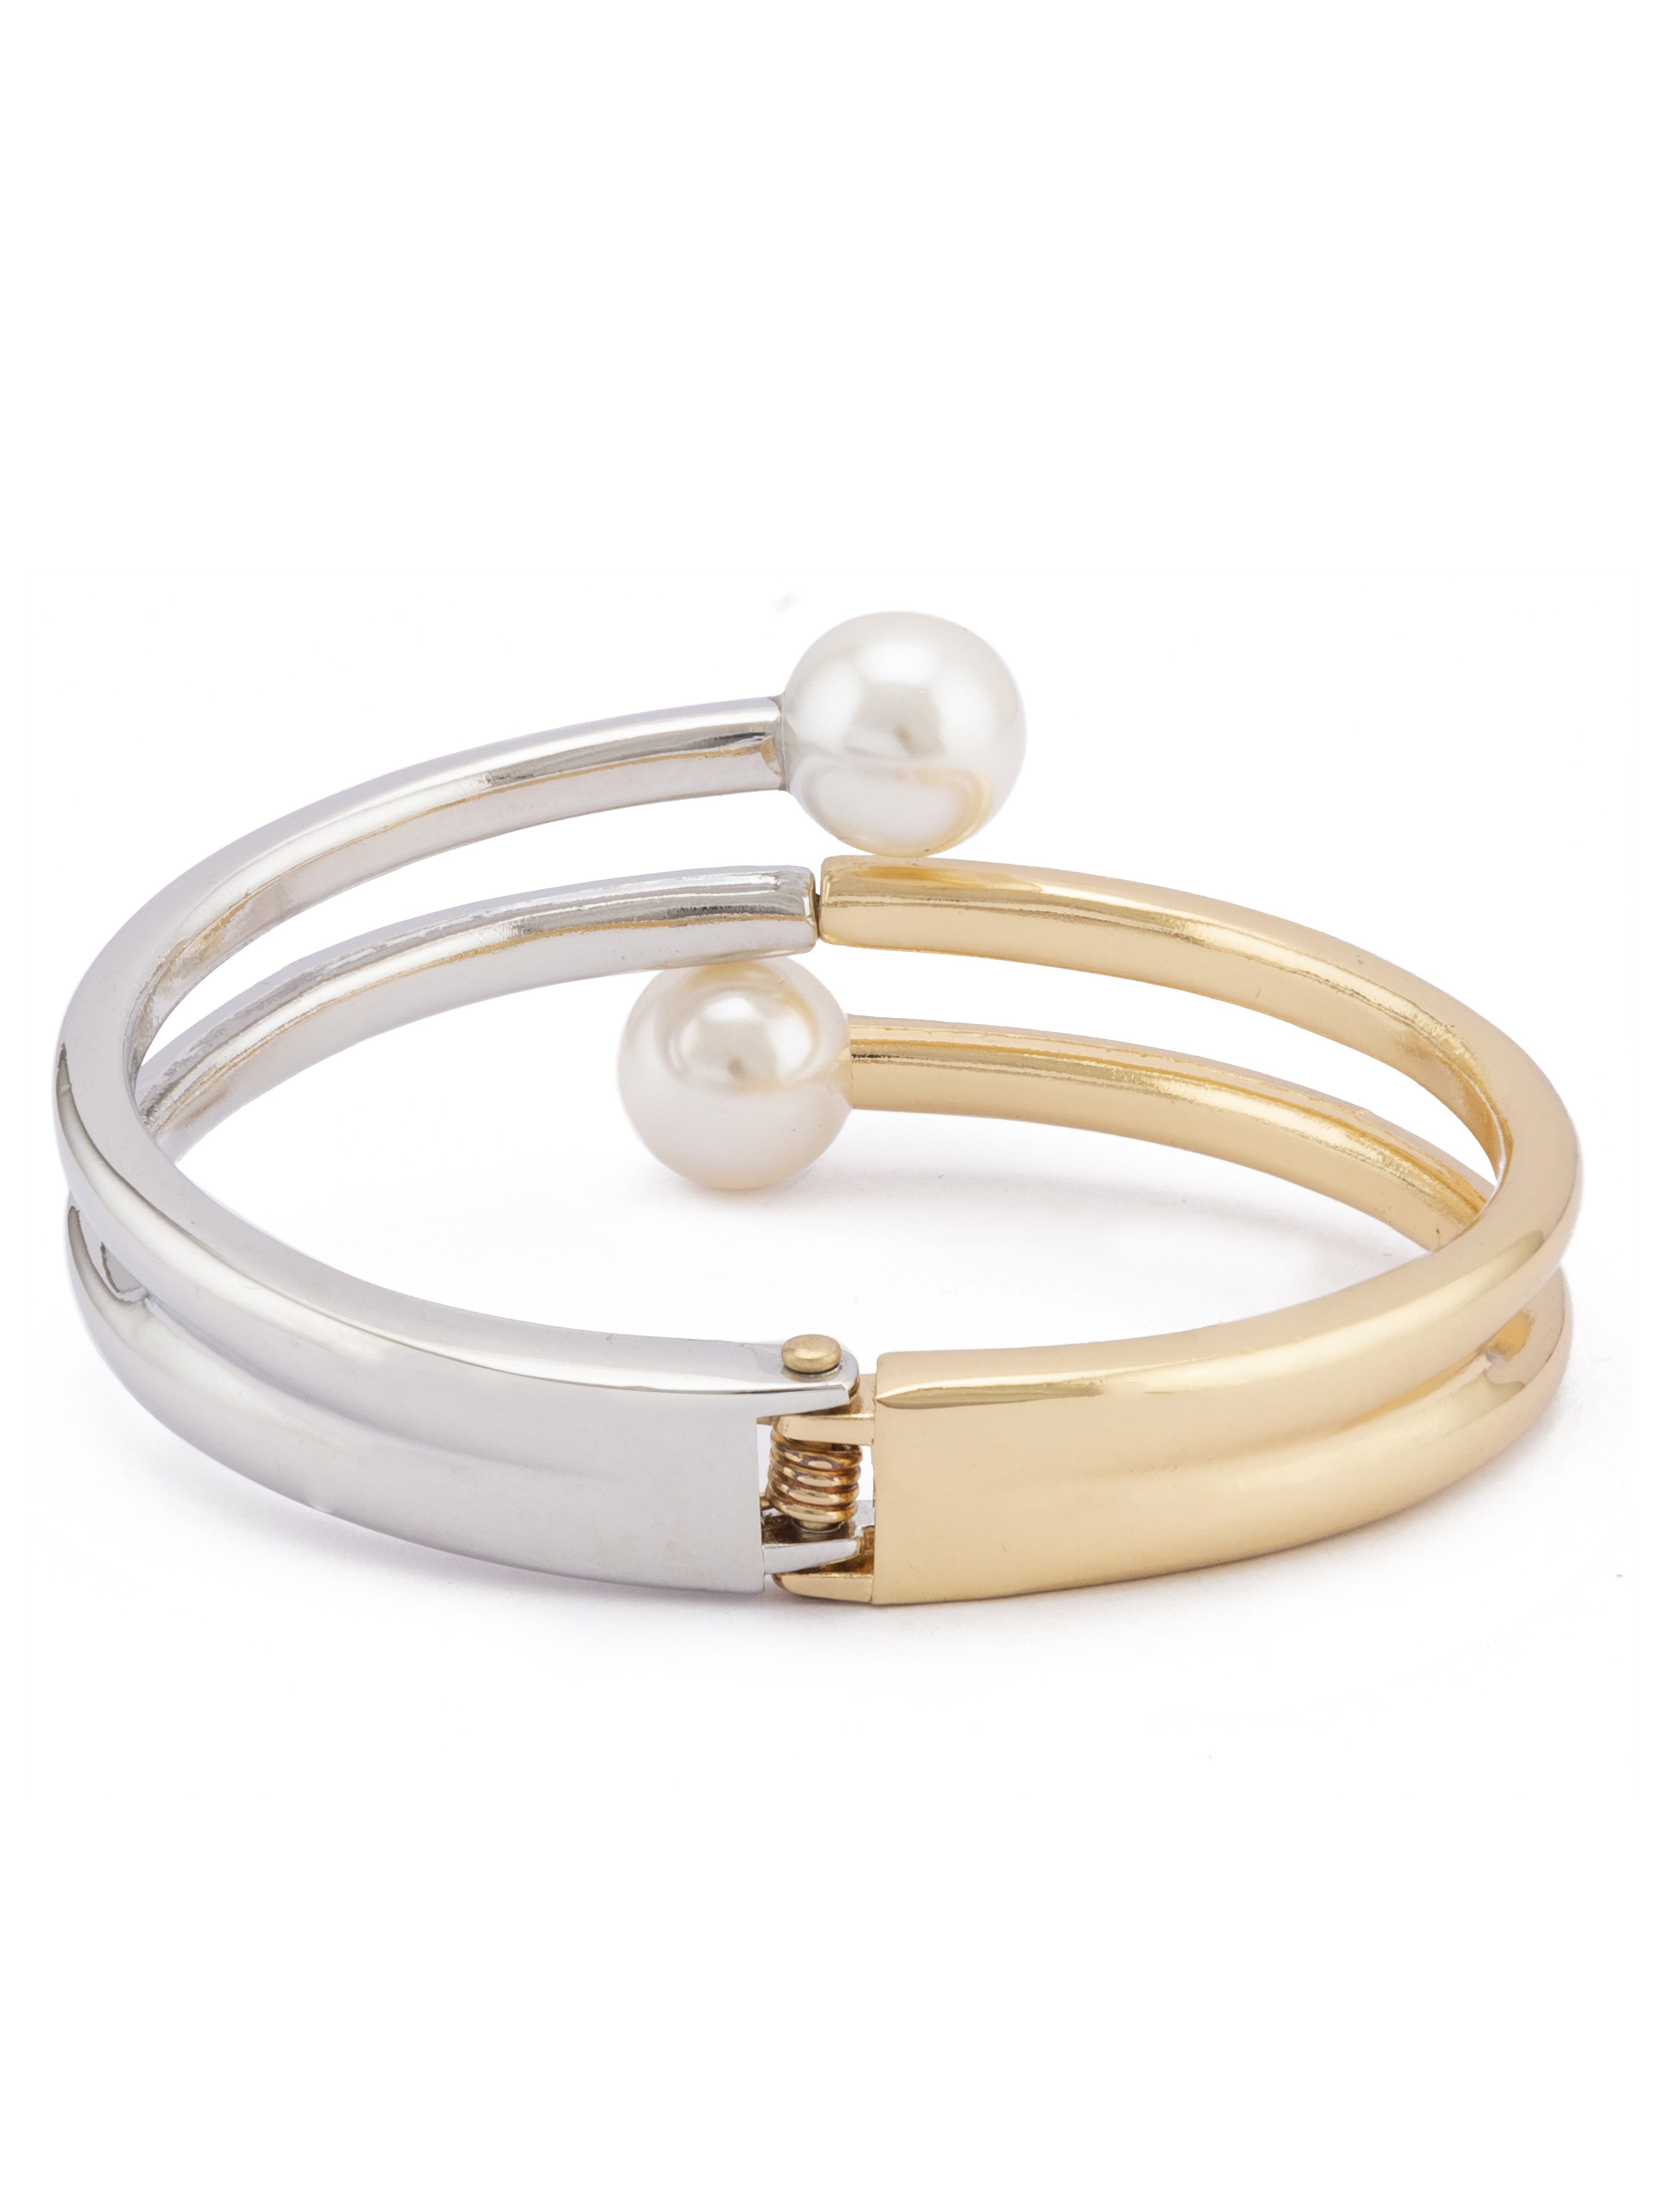 Pearl Silver Gold Bangle Bracelet-2